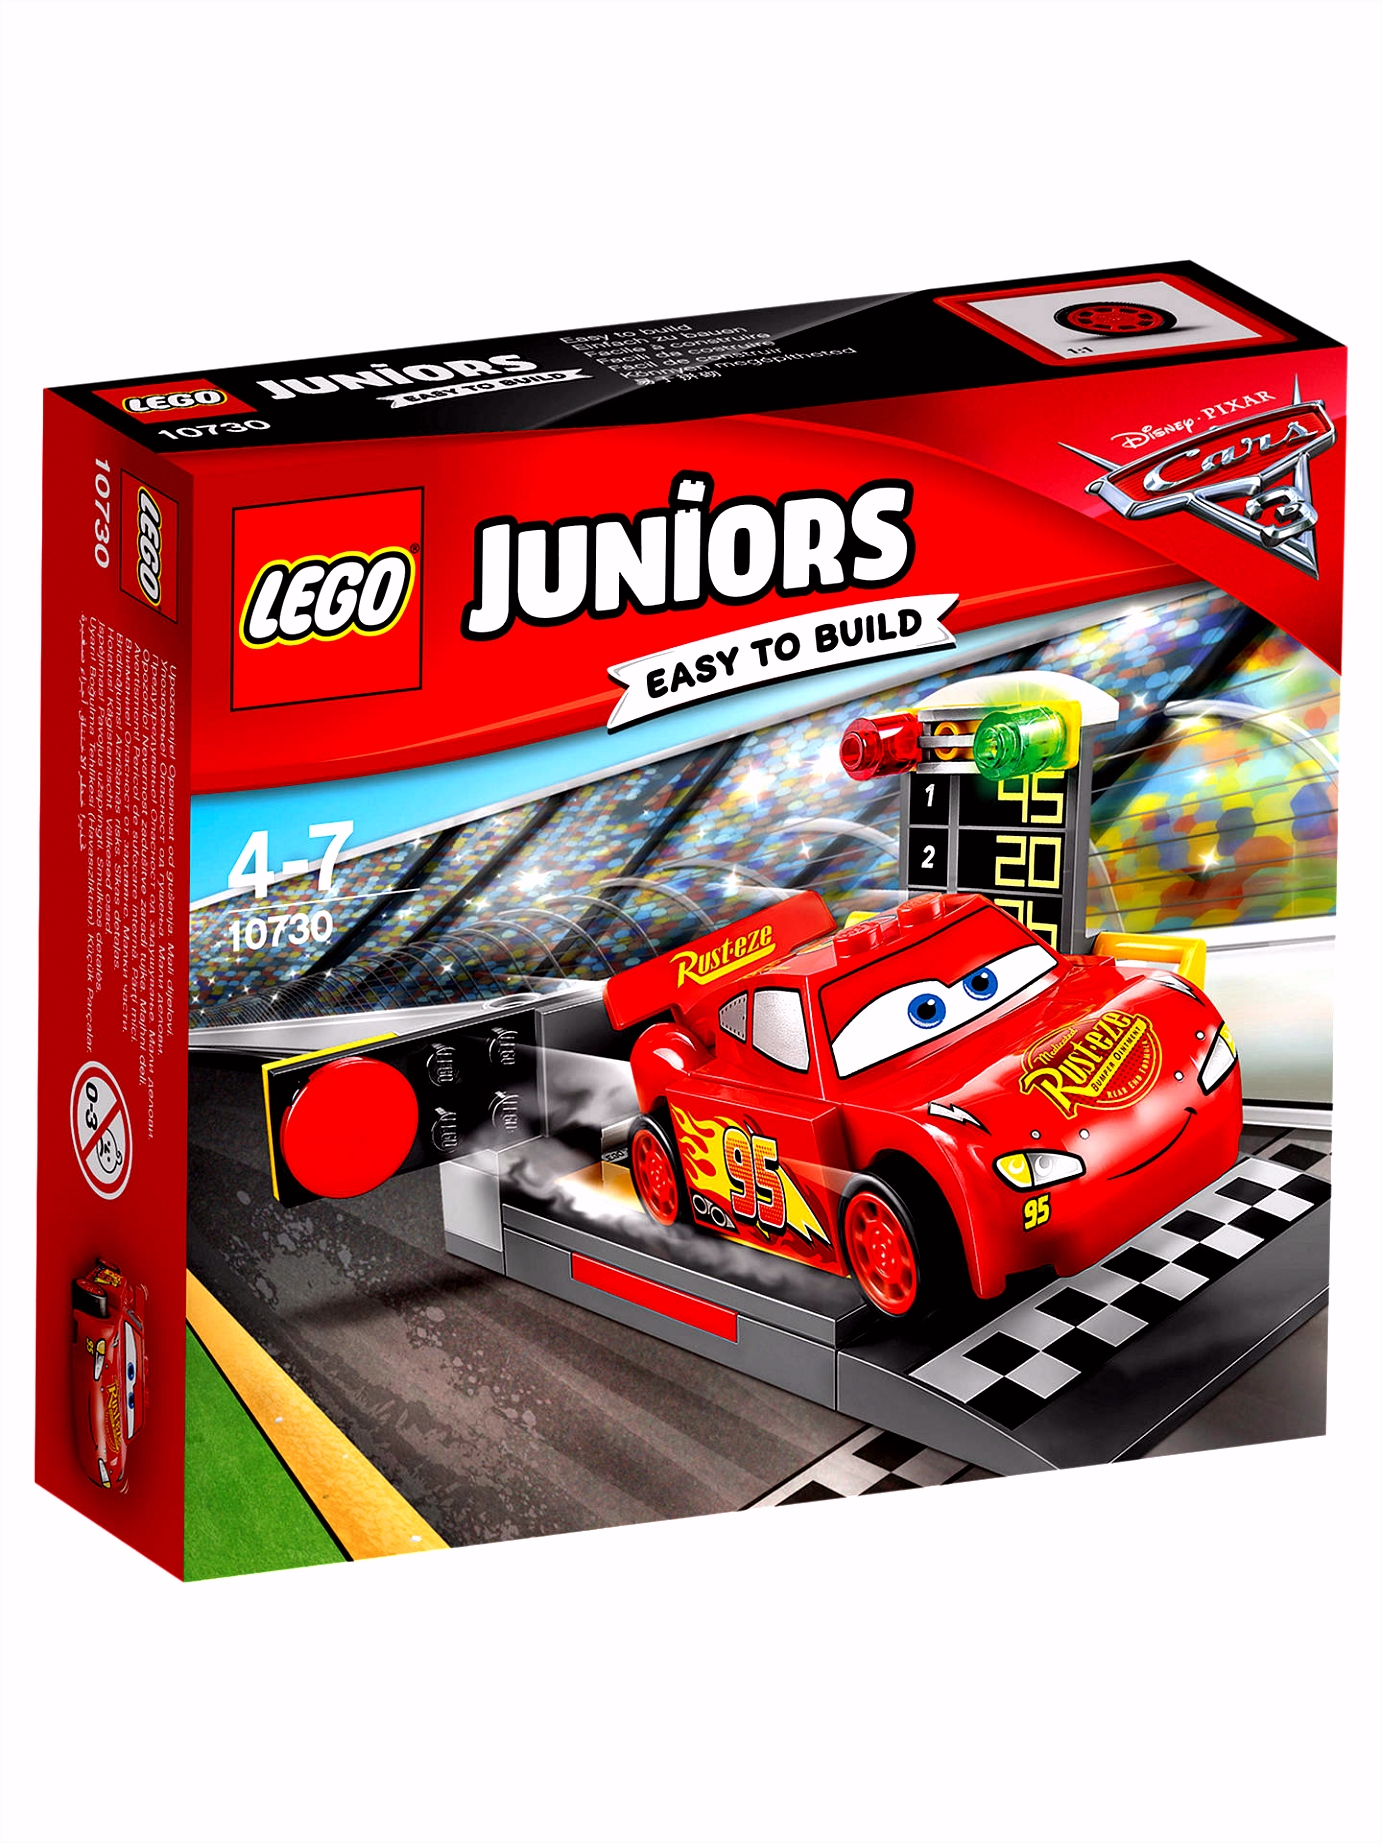 LEGO Juniors Disney Pixar Cars 3 Lightning McQueen Speed